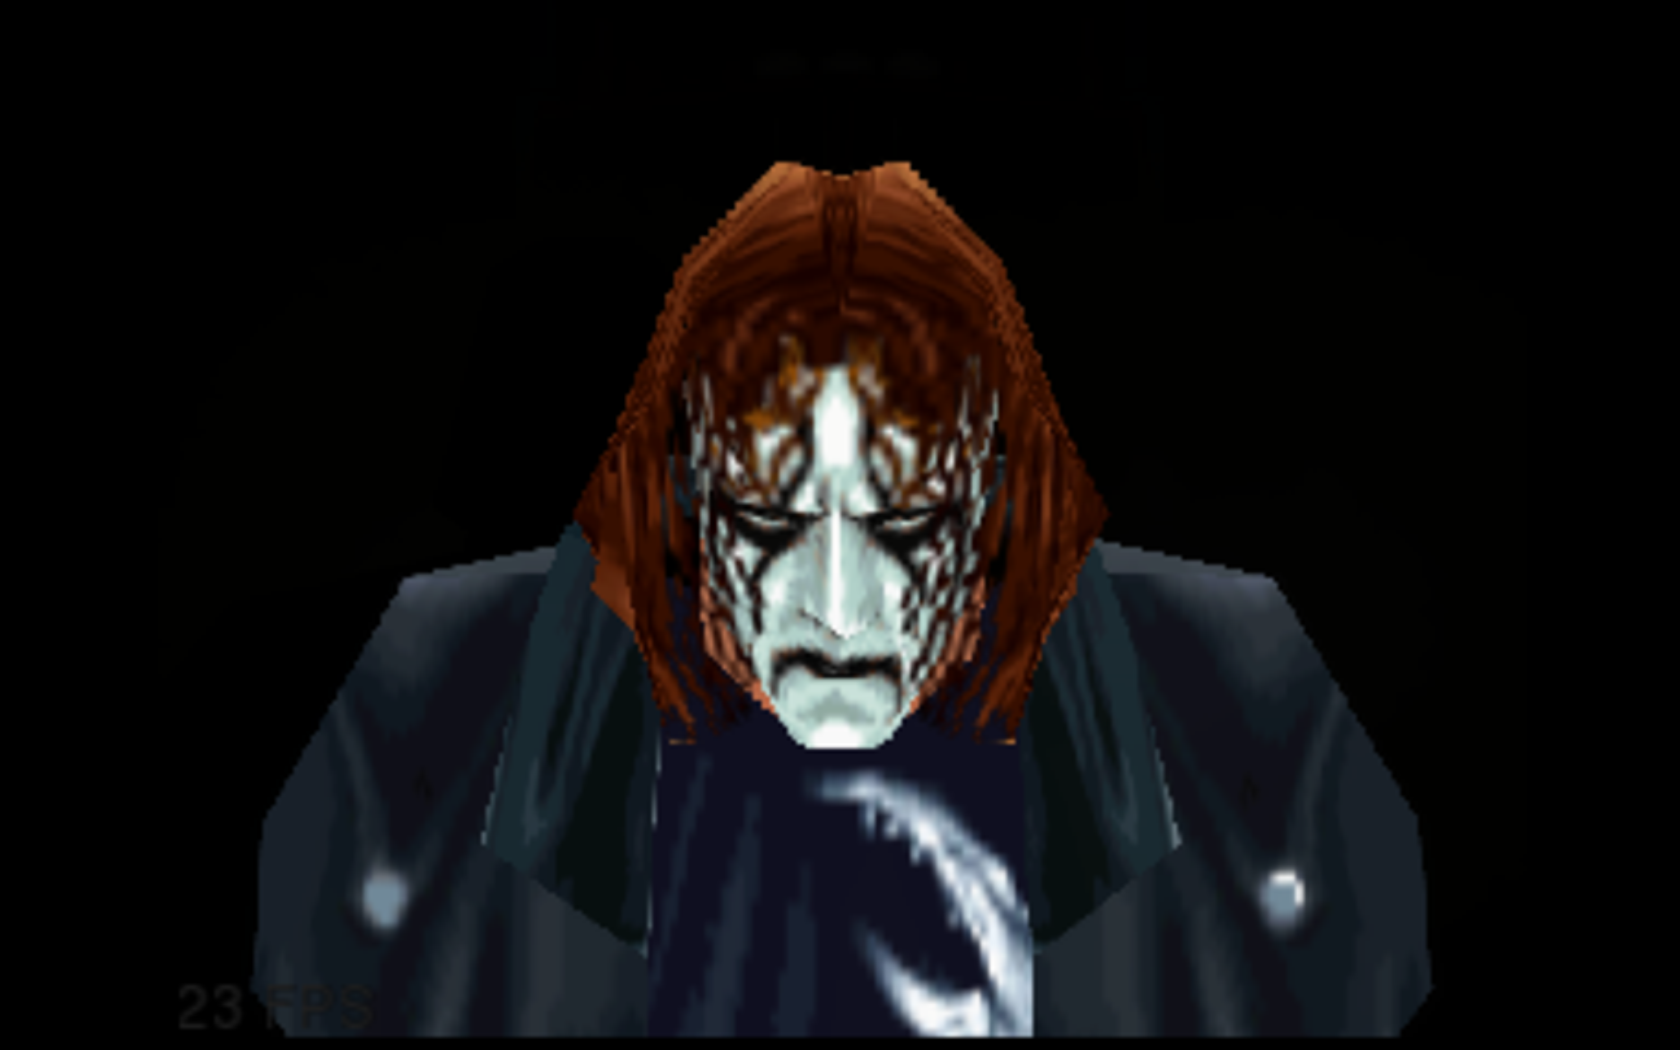 https://s3.eu-west-3.amazonaws.com/games.anthony-dessalles.com/WCW nWo Revenge N64 2020 - Screenshots/wcw-nwo-revenge-screenshot-2020112815461606578360.png